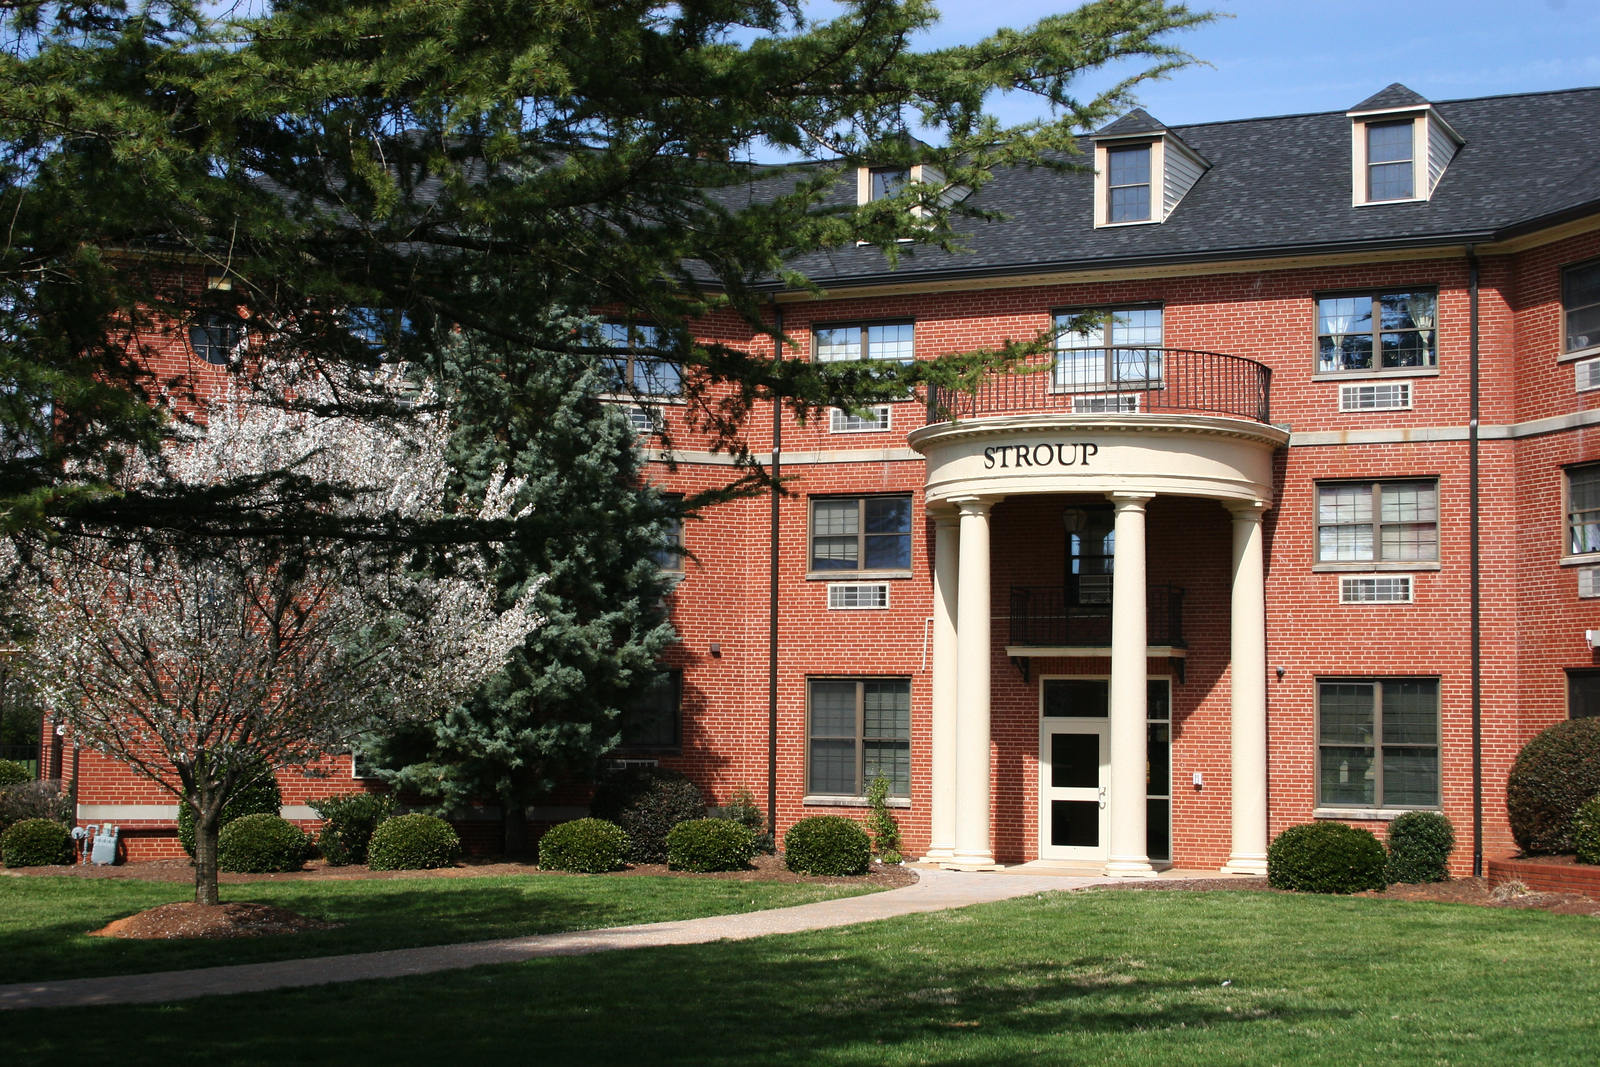 Stroup Hall on a nice spring morning on the campus of Gardner-Webb University.